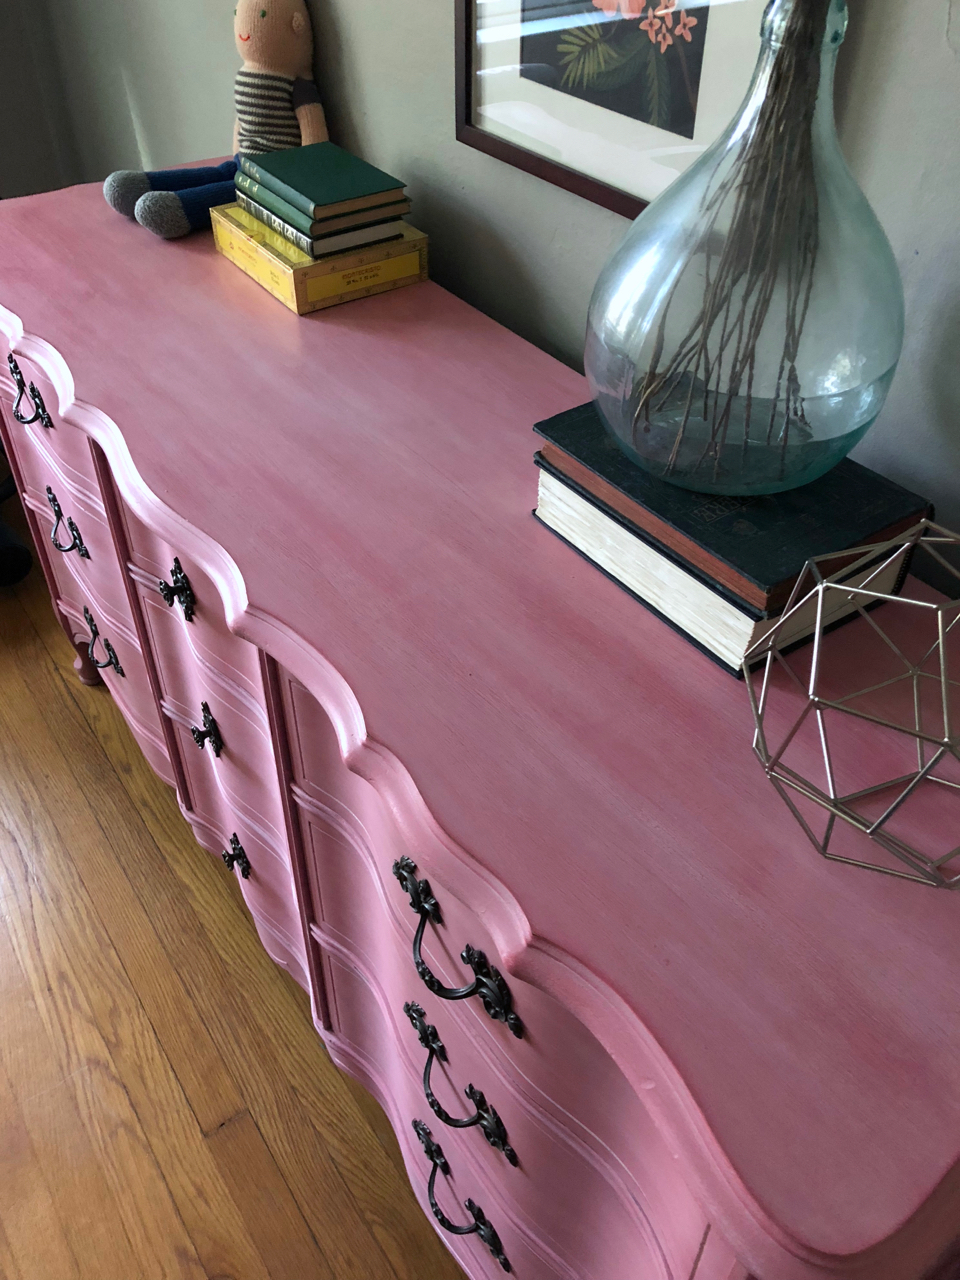 jo-torrijos-a-simpler-design-atlanta-painted-furniture-annie-sloan-pink-dresser-french-provincial-4.jpg